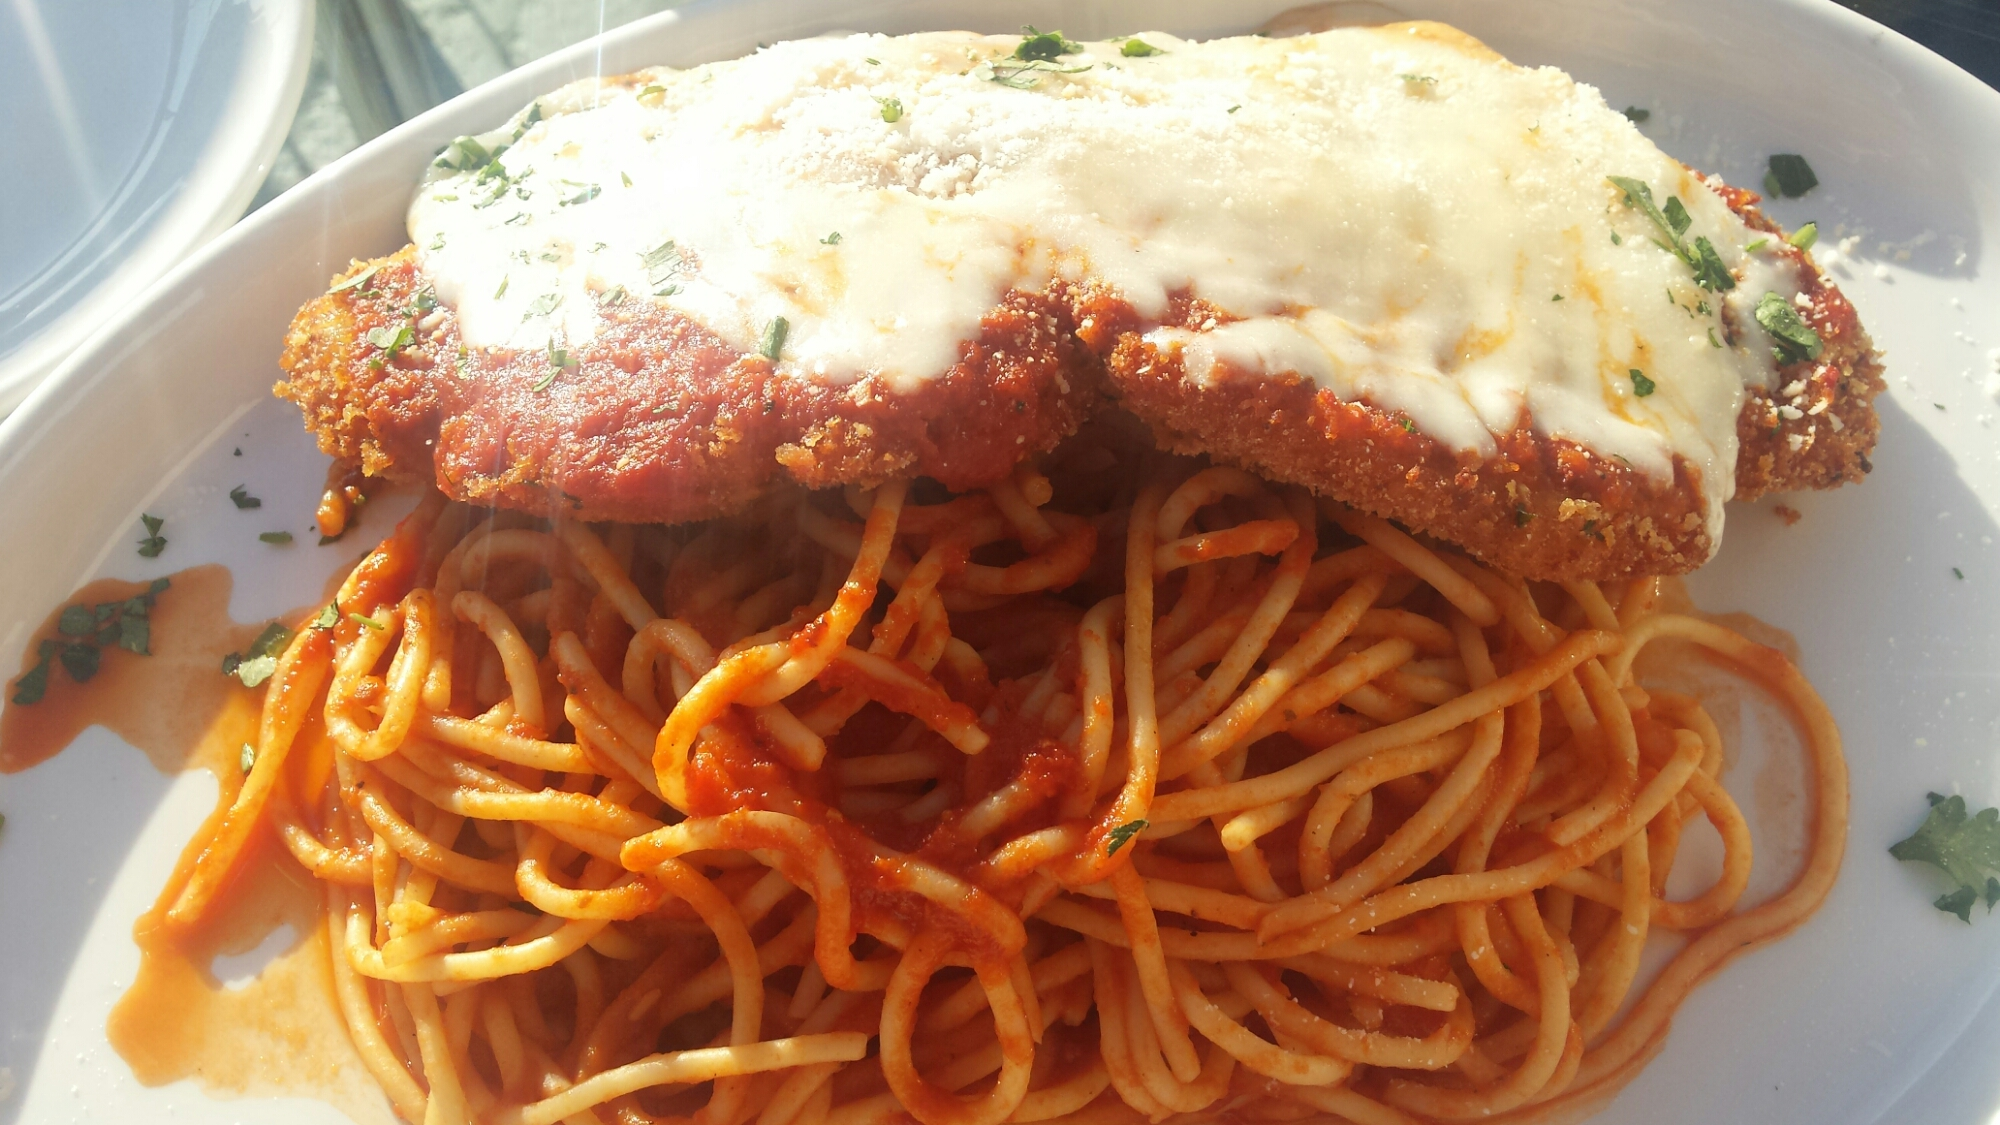 Pollo Parmigiana- Mary's organic chicken breast, lightly breaded, topped with meltedmozzarella, San Marzano marinara, served over spaghetti pomodoro